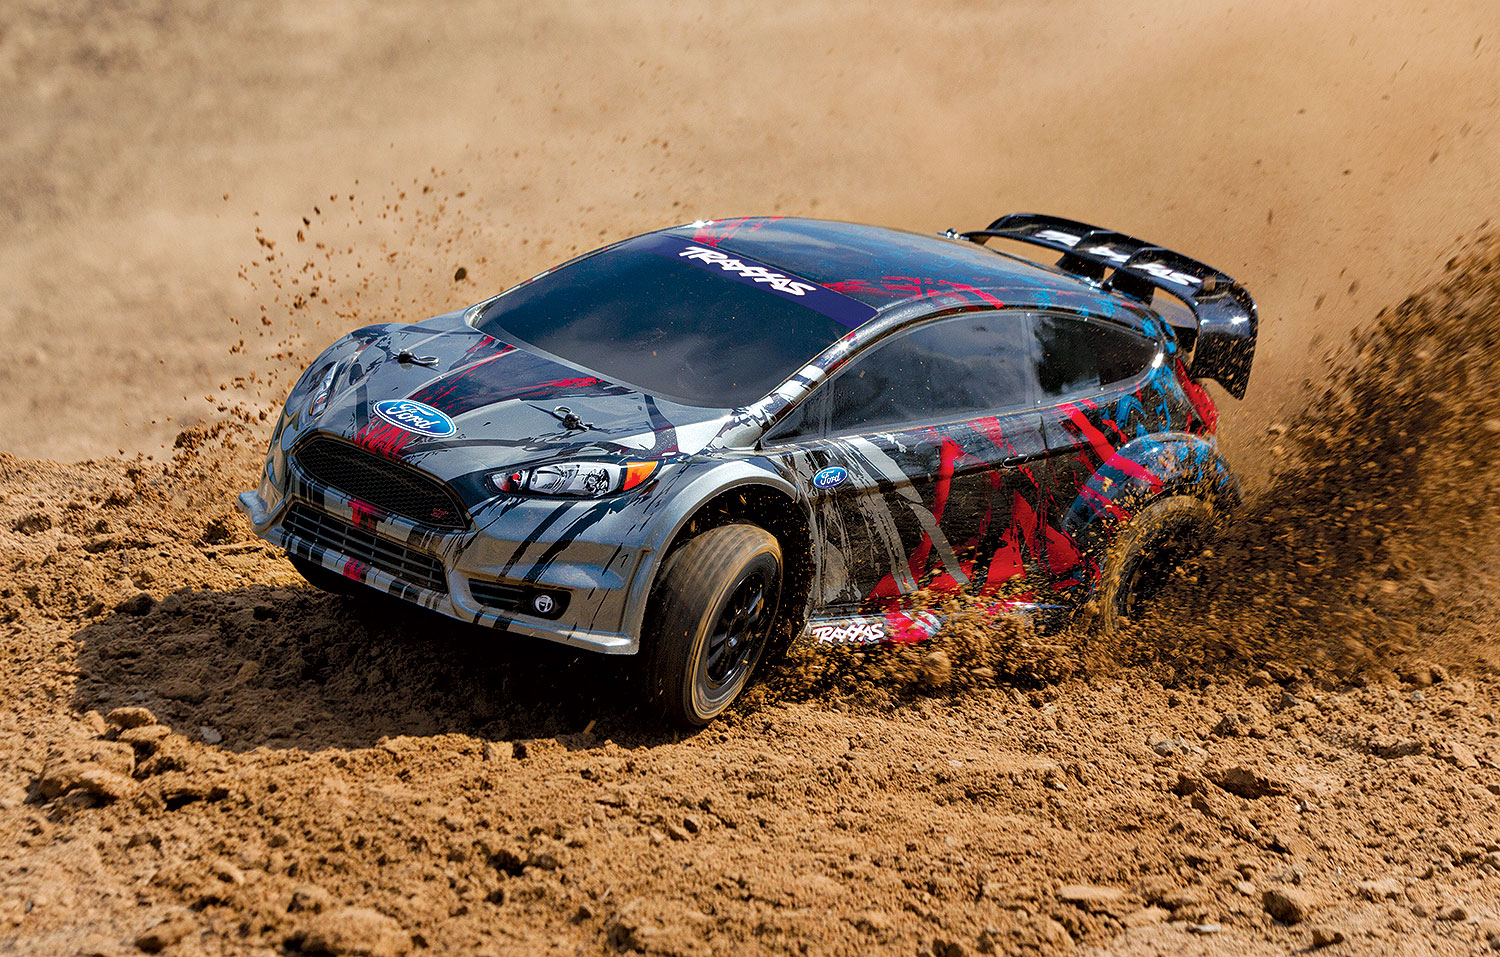 remote control car traxxas with Rc Ford Fiesta St Rally Traxxas 110 Scale on Rc Insider Vol 5 Issue 3 additionally Hands On The Traxxas Trx 4 Scale Trail Crawler in addition Traxxas 1 16 E Revo VXL 4WD Brushless Truck W TQ 24GHz Radio 1200mAh 6 Cell Battery as well 32698552052 furthermore Dragster Rc Car Traxxas Nhra Funny Car.